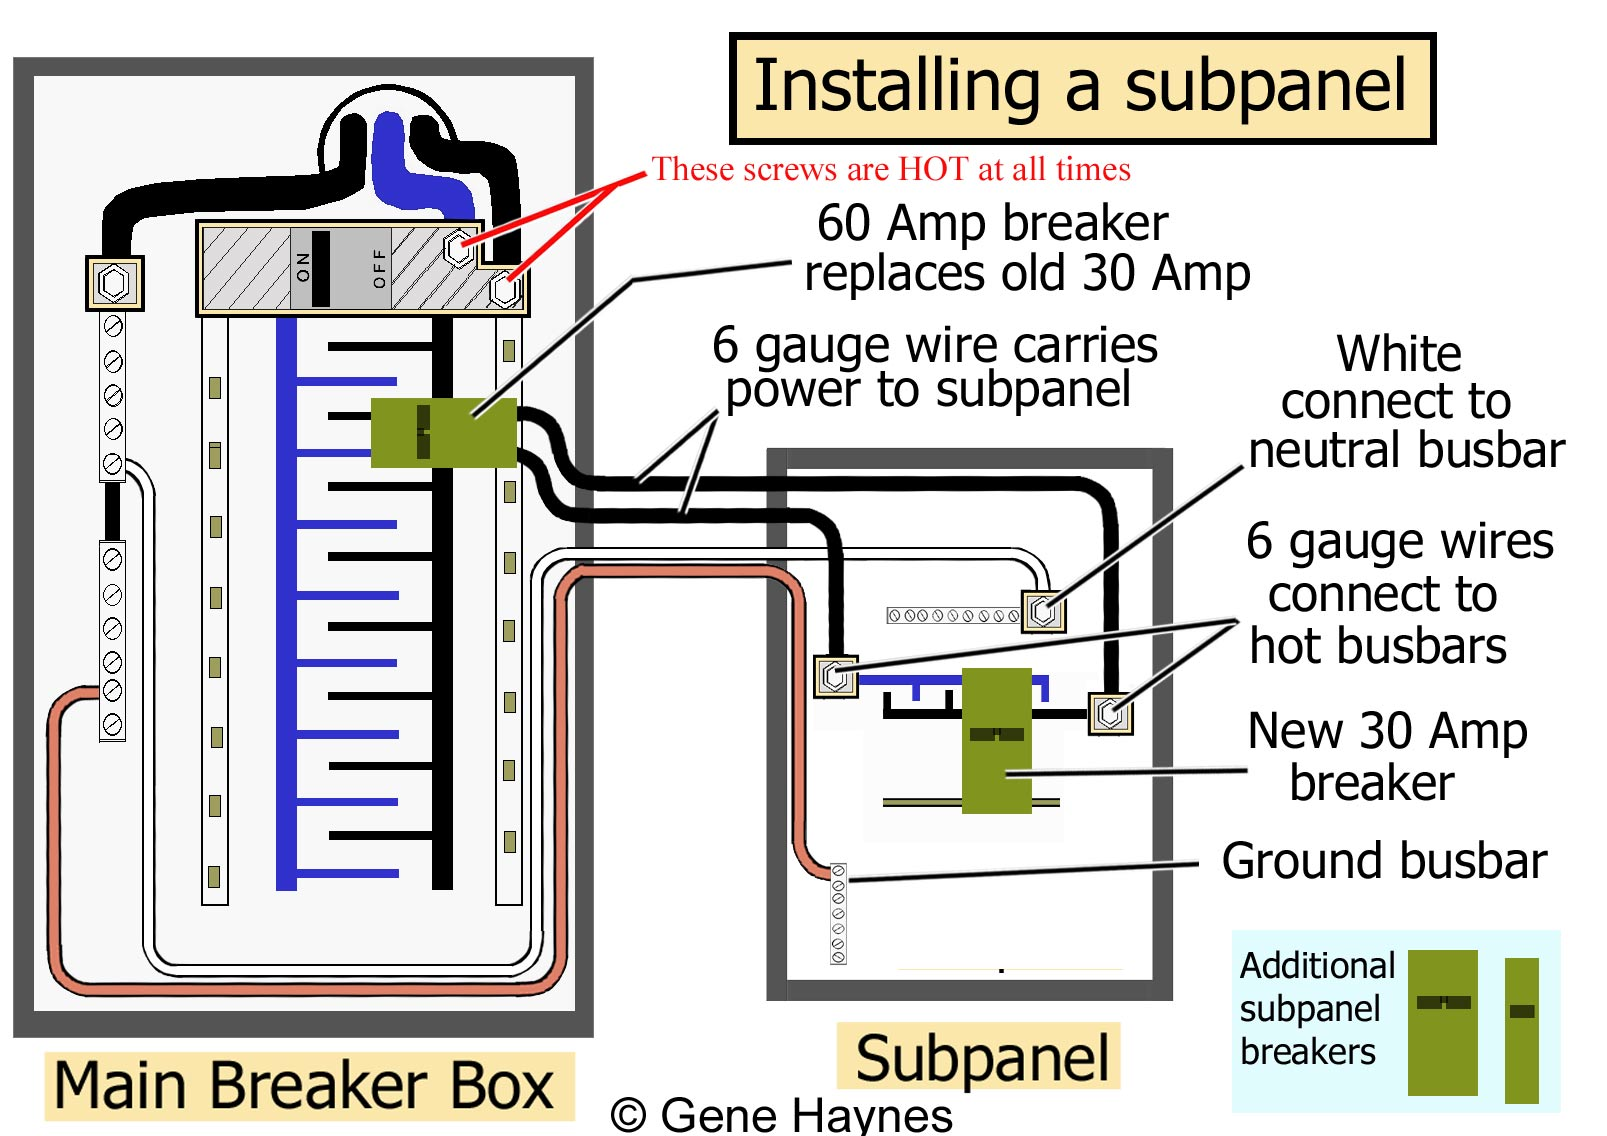 How to install a subpanel how to install main lug see larger 60 amp subpanel with 240volt and 120volt use with both 240volt and 120volt breakers 1 60 150 amp breaker replaces any 240 breaker in main box keyboard keysfo Gallery